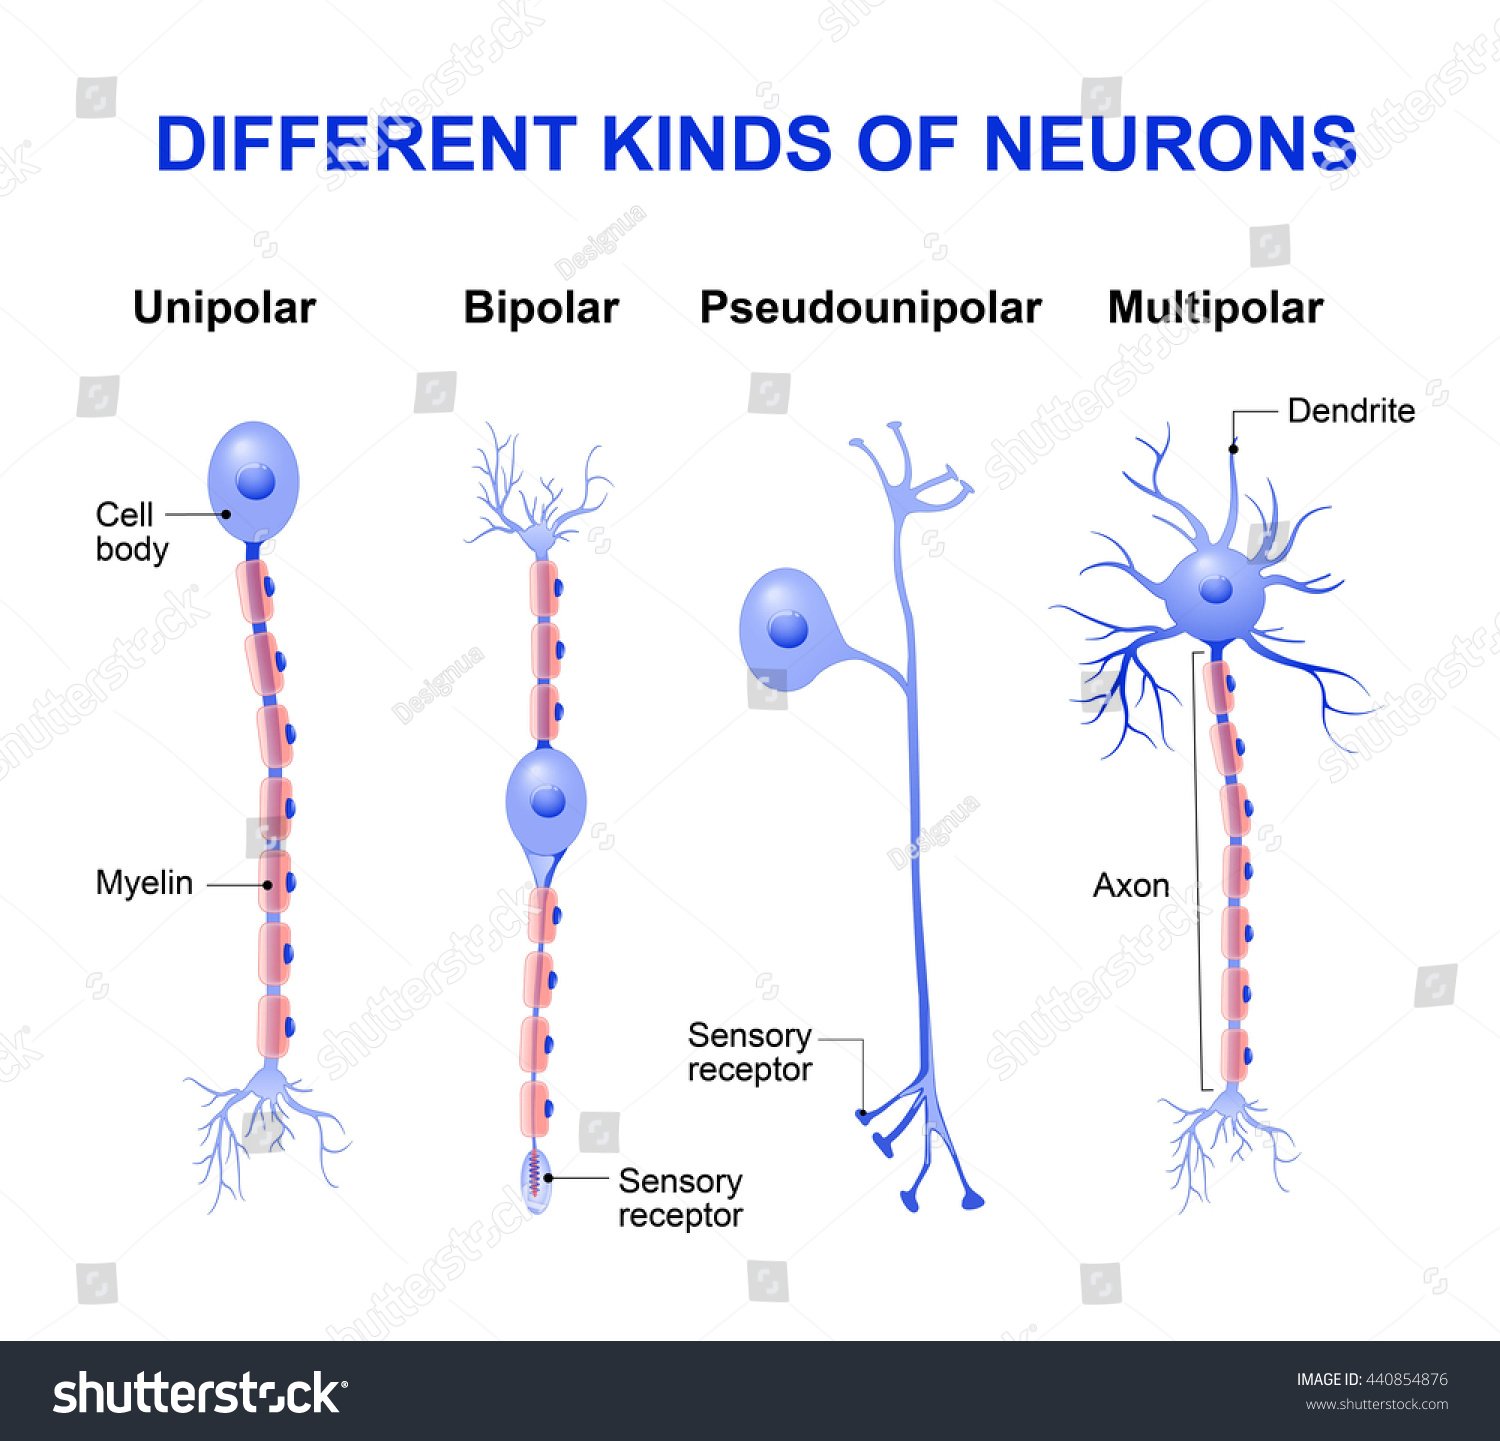 Different kinds neurons structure typical neuron stock different kinds of neurons structure of a typical neuron ccuart Images